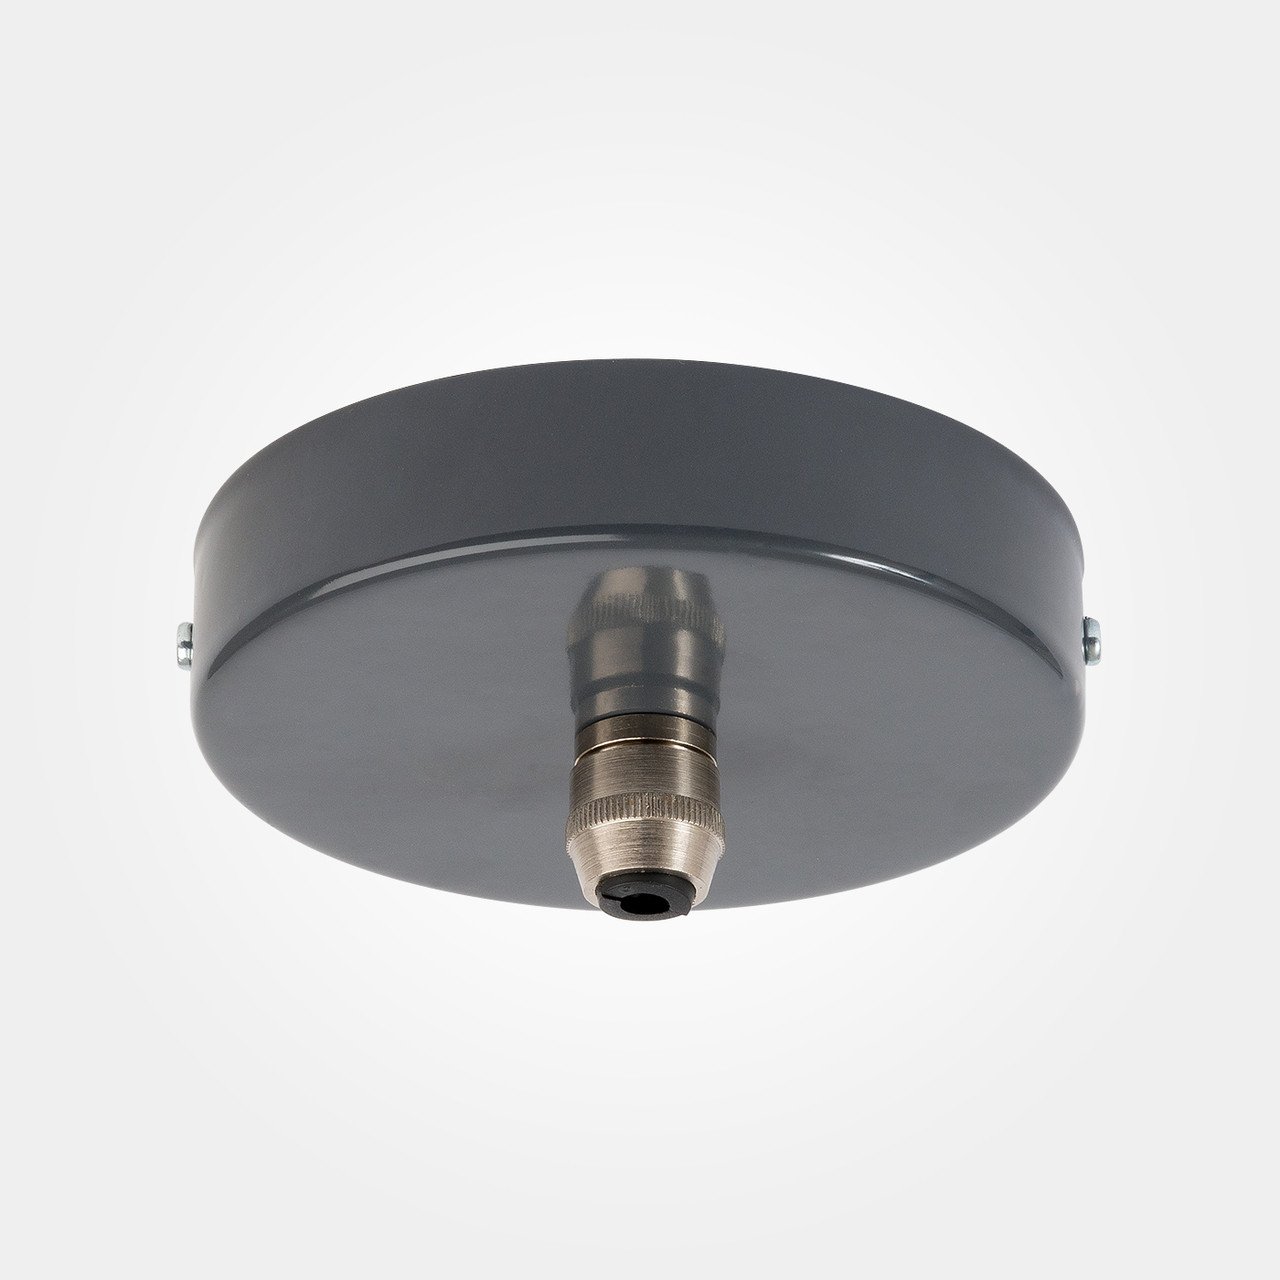 Ceiling Rose Muuto E Canopy Kit Communal Chandelier Pendant Switched Socket Outlet 10 Amp 240 Volt Electrotraders Online Image